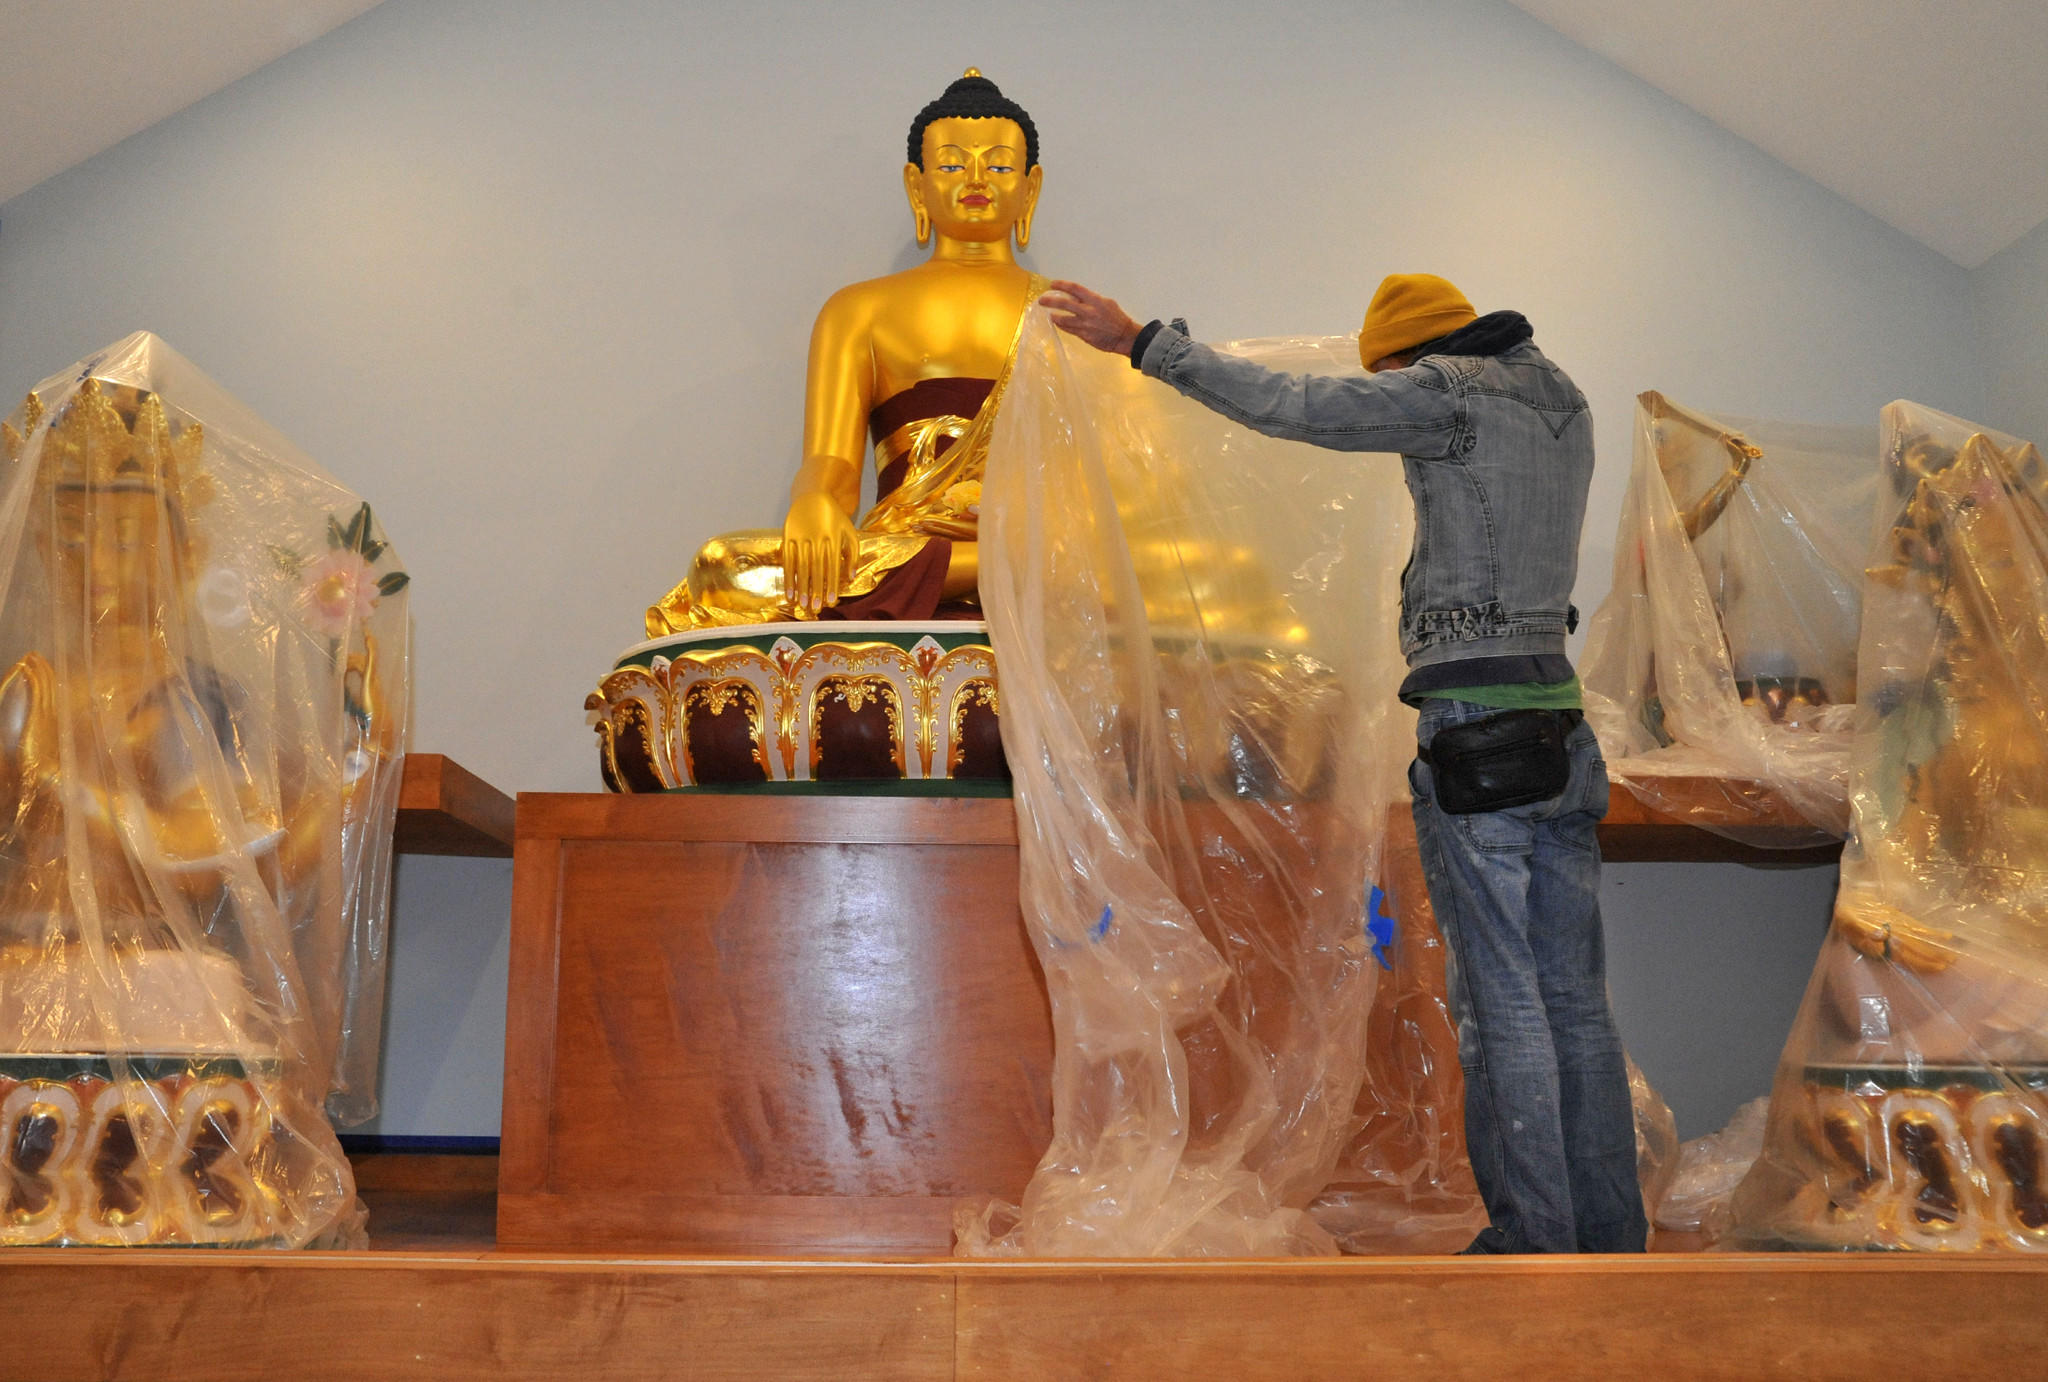 Talmadge Lazorko, who came from Florida to help with the construction of the Kadampa Medication Center Maryland, covers one of the enshrined Buddhas.